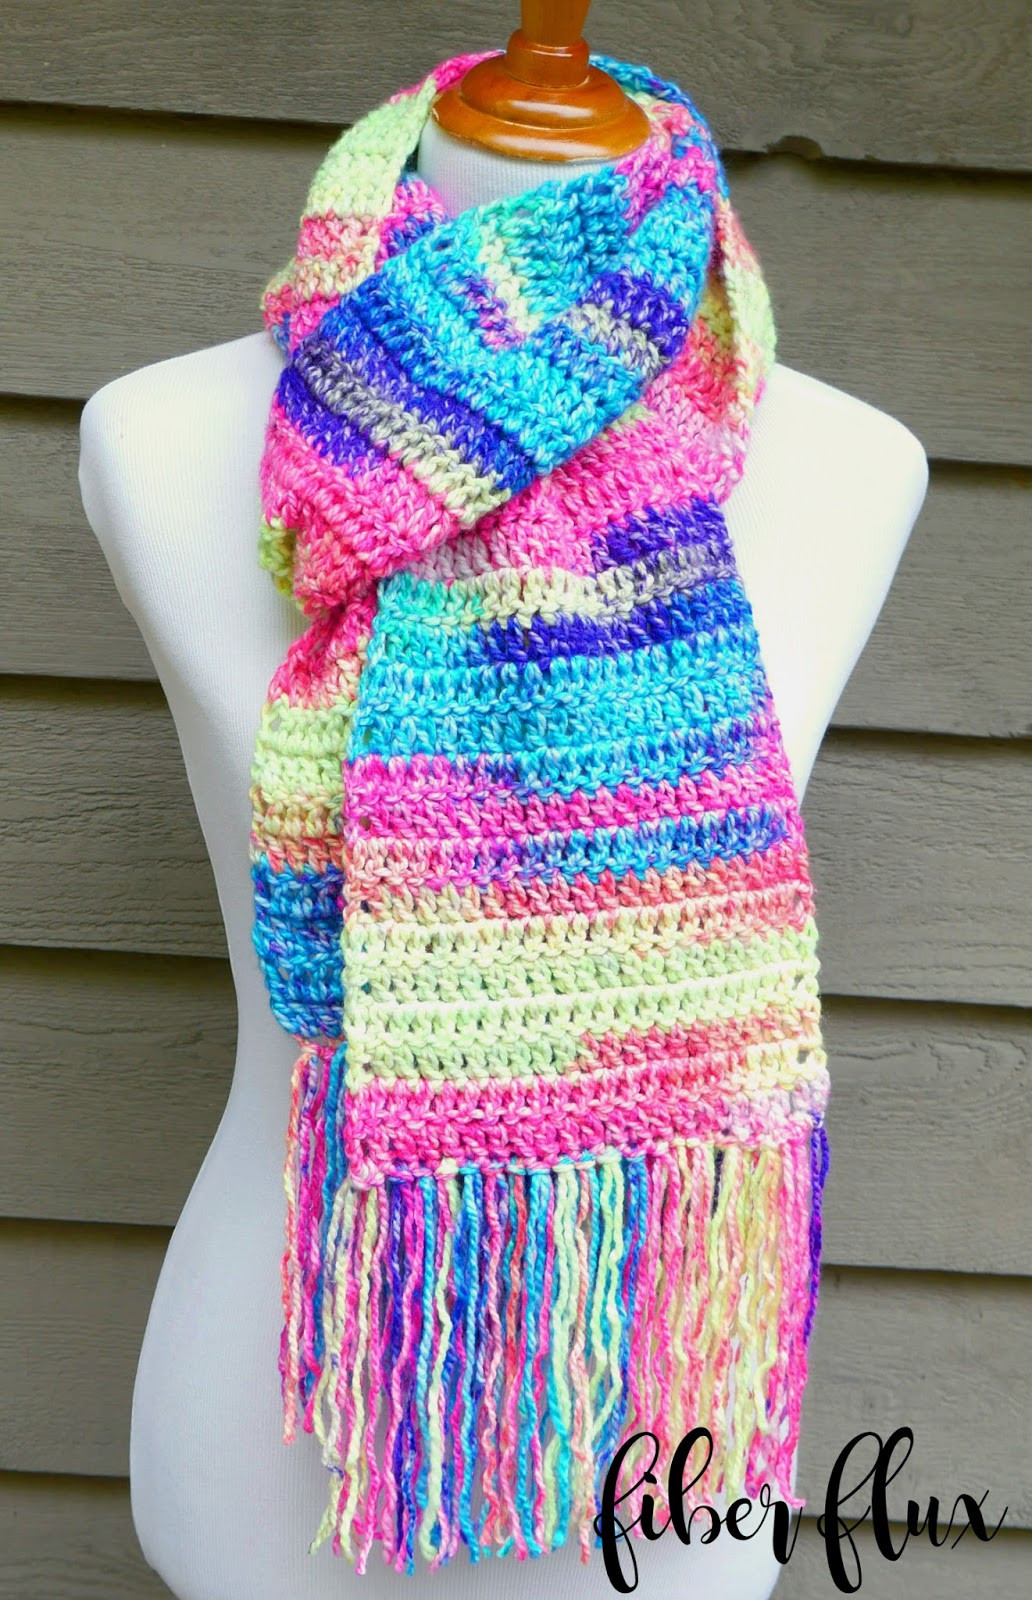 New Fiber Flux Free Crochet Pattern Absolute Beginner Crochet Stitches for Scarves Of Gorgeous 48 Ideas Crochet Stitches for Scarves